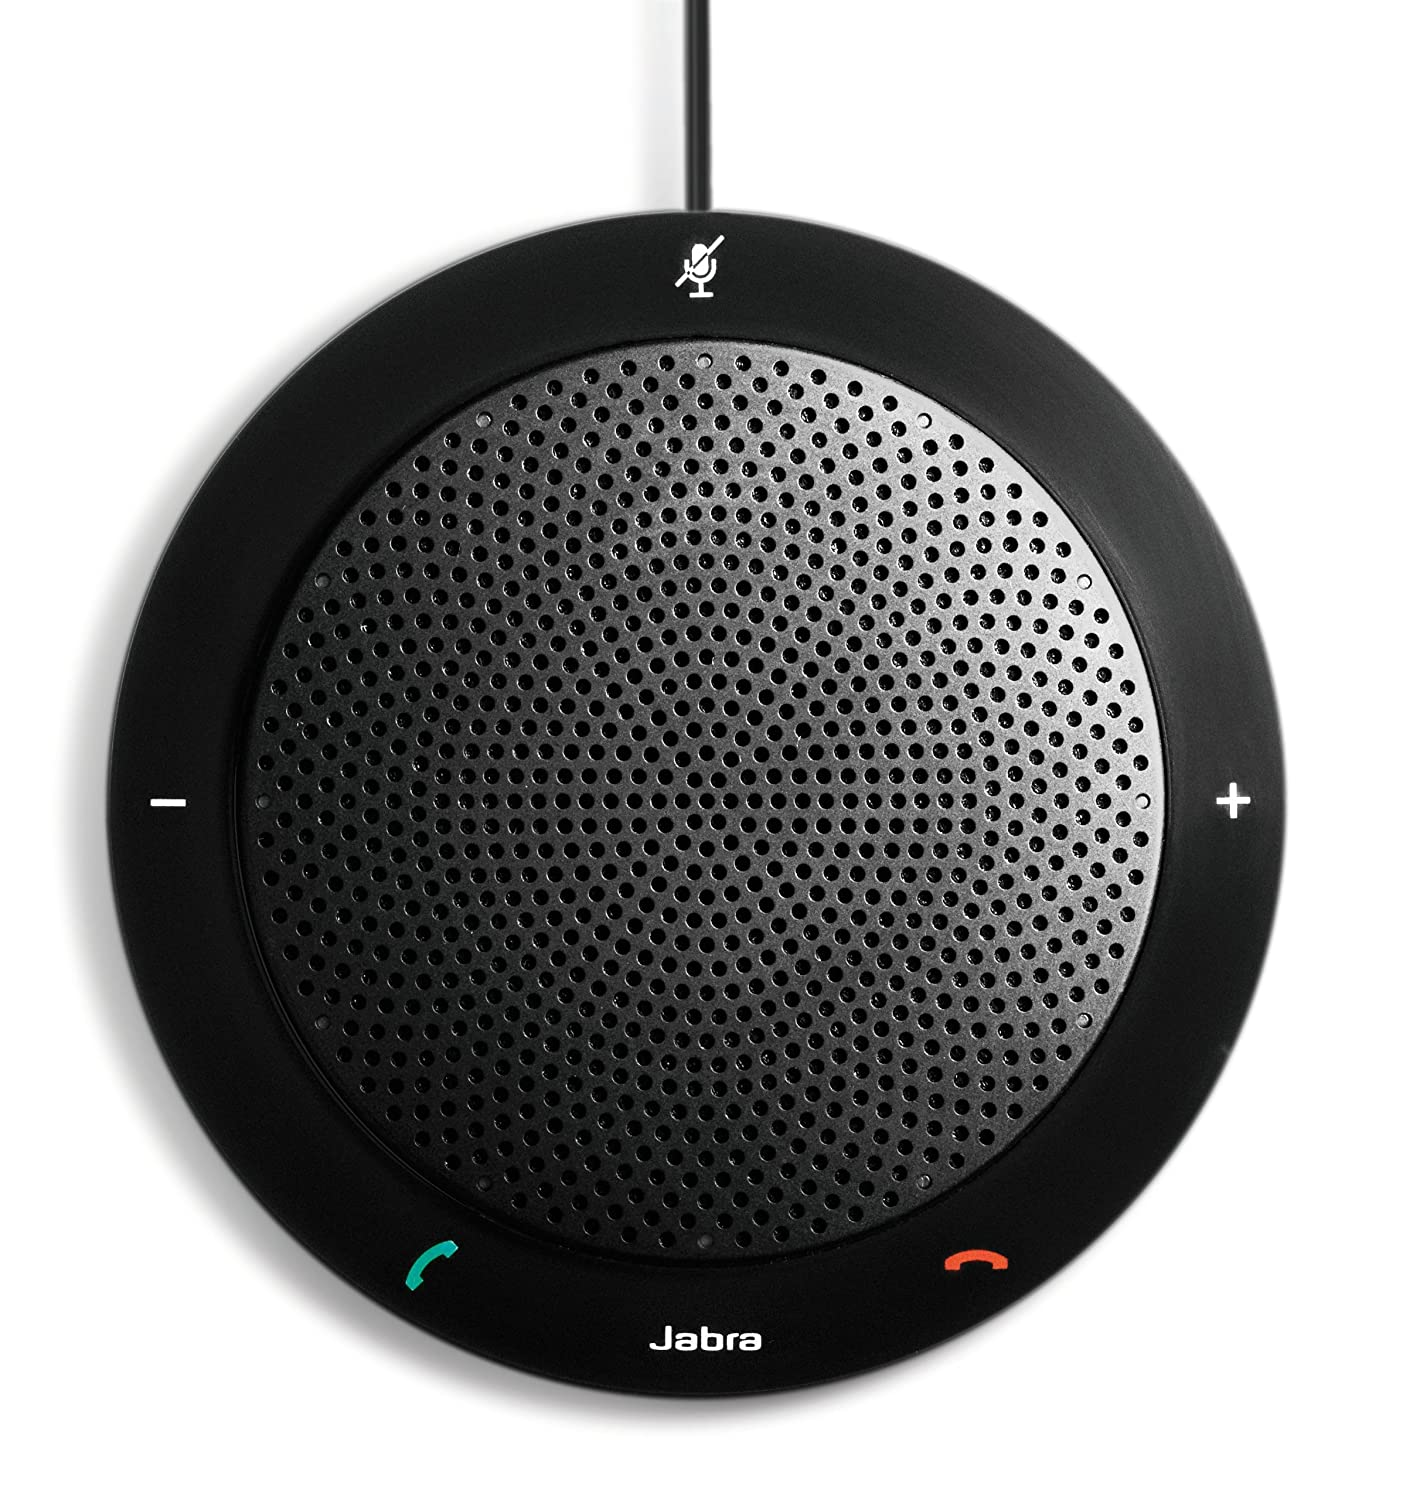 Jabra Speak 410 USB Speakerphone for Skype and other VoIP calls (U.S. Retail Packaging)